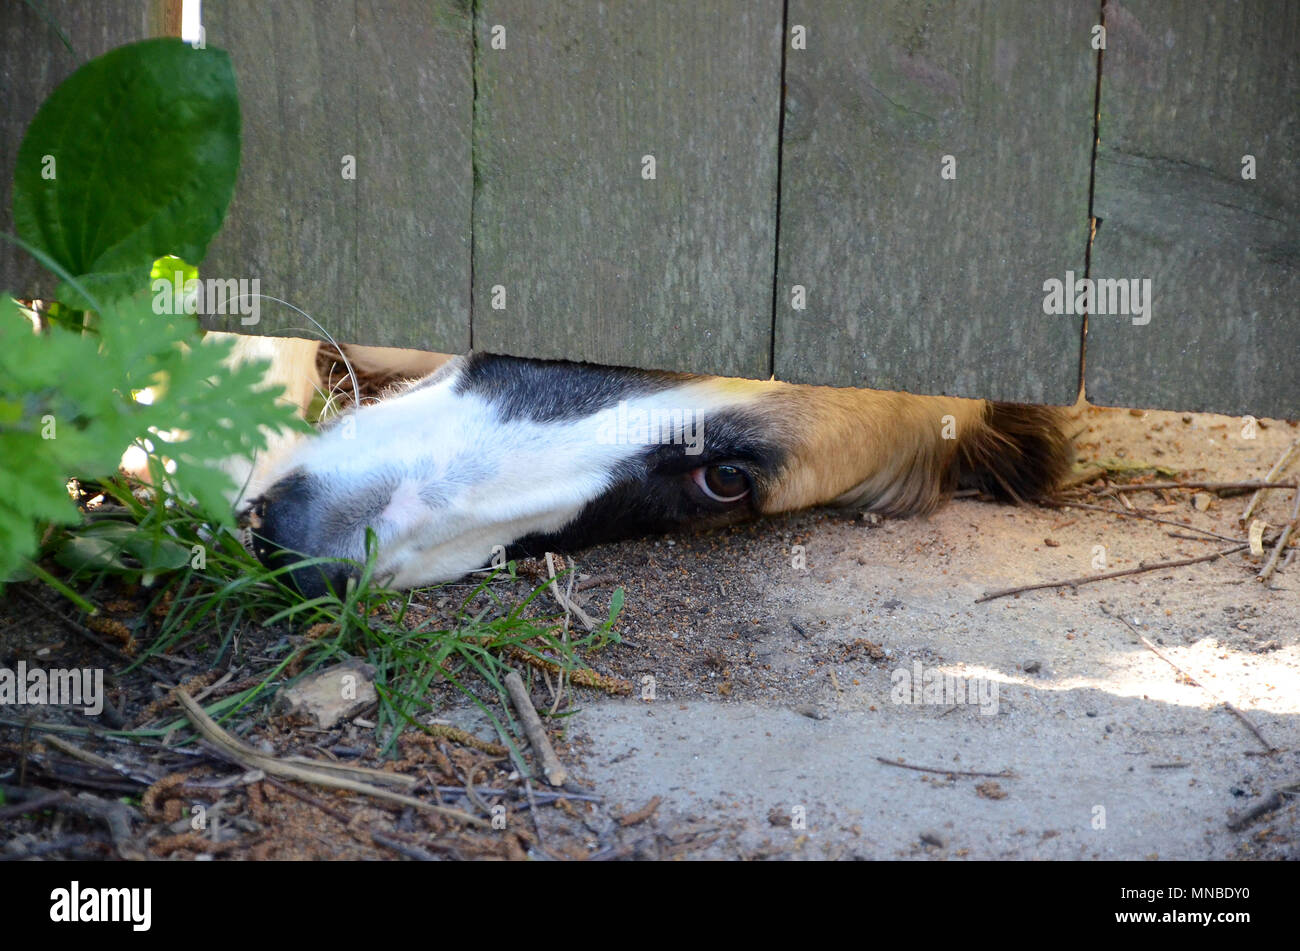 The nose and one eye of a Borzoi dog peeps out under a garden gate, the animal has a longing expression. - Stock Image